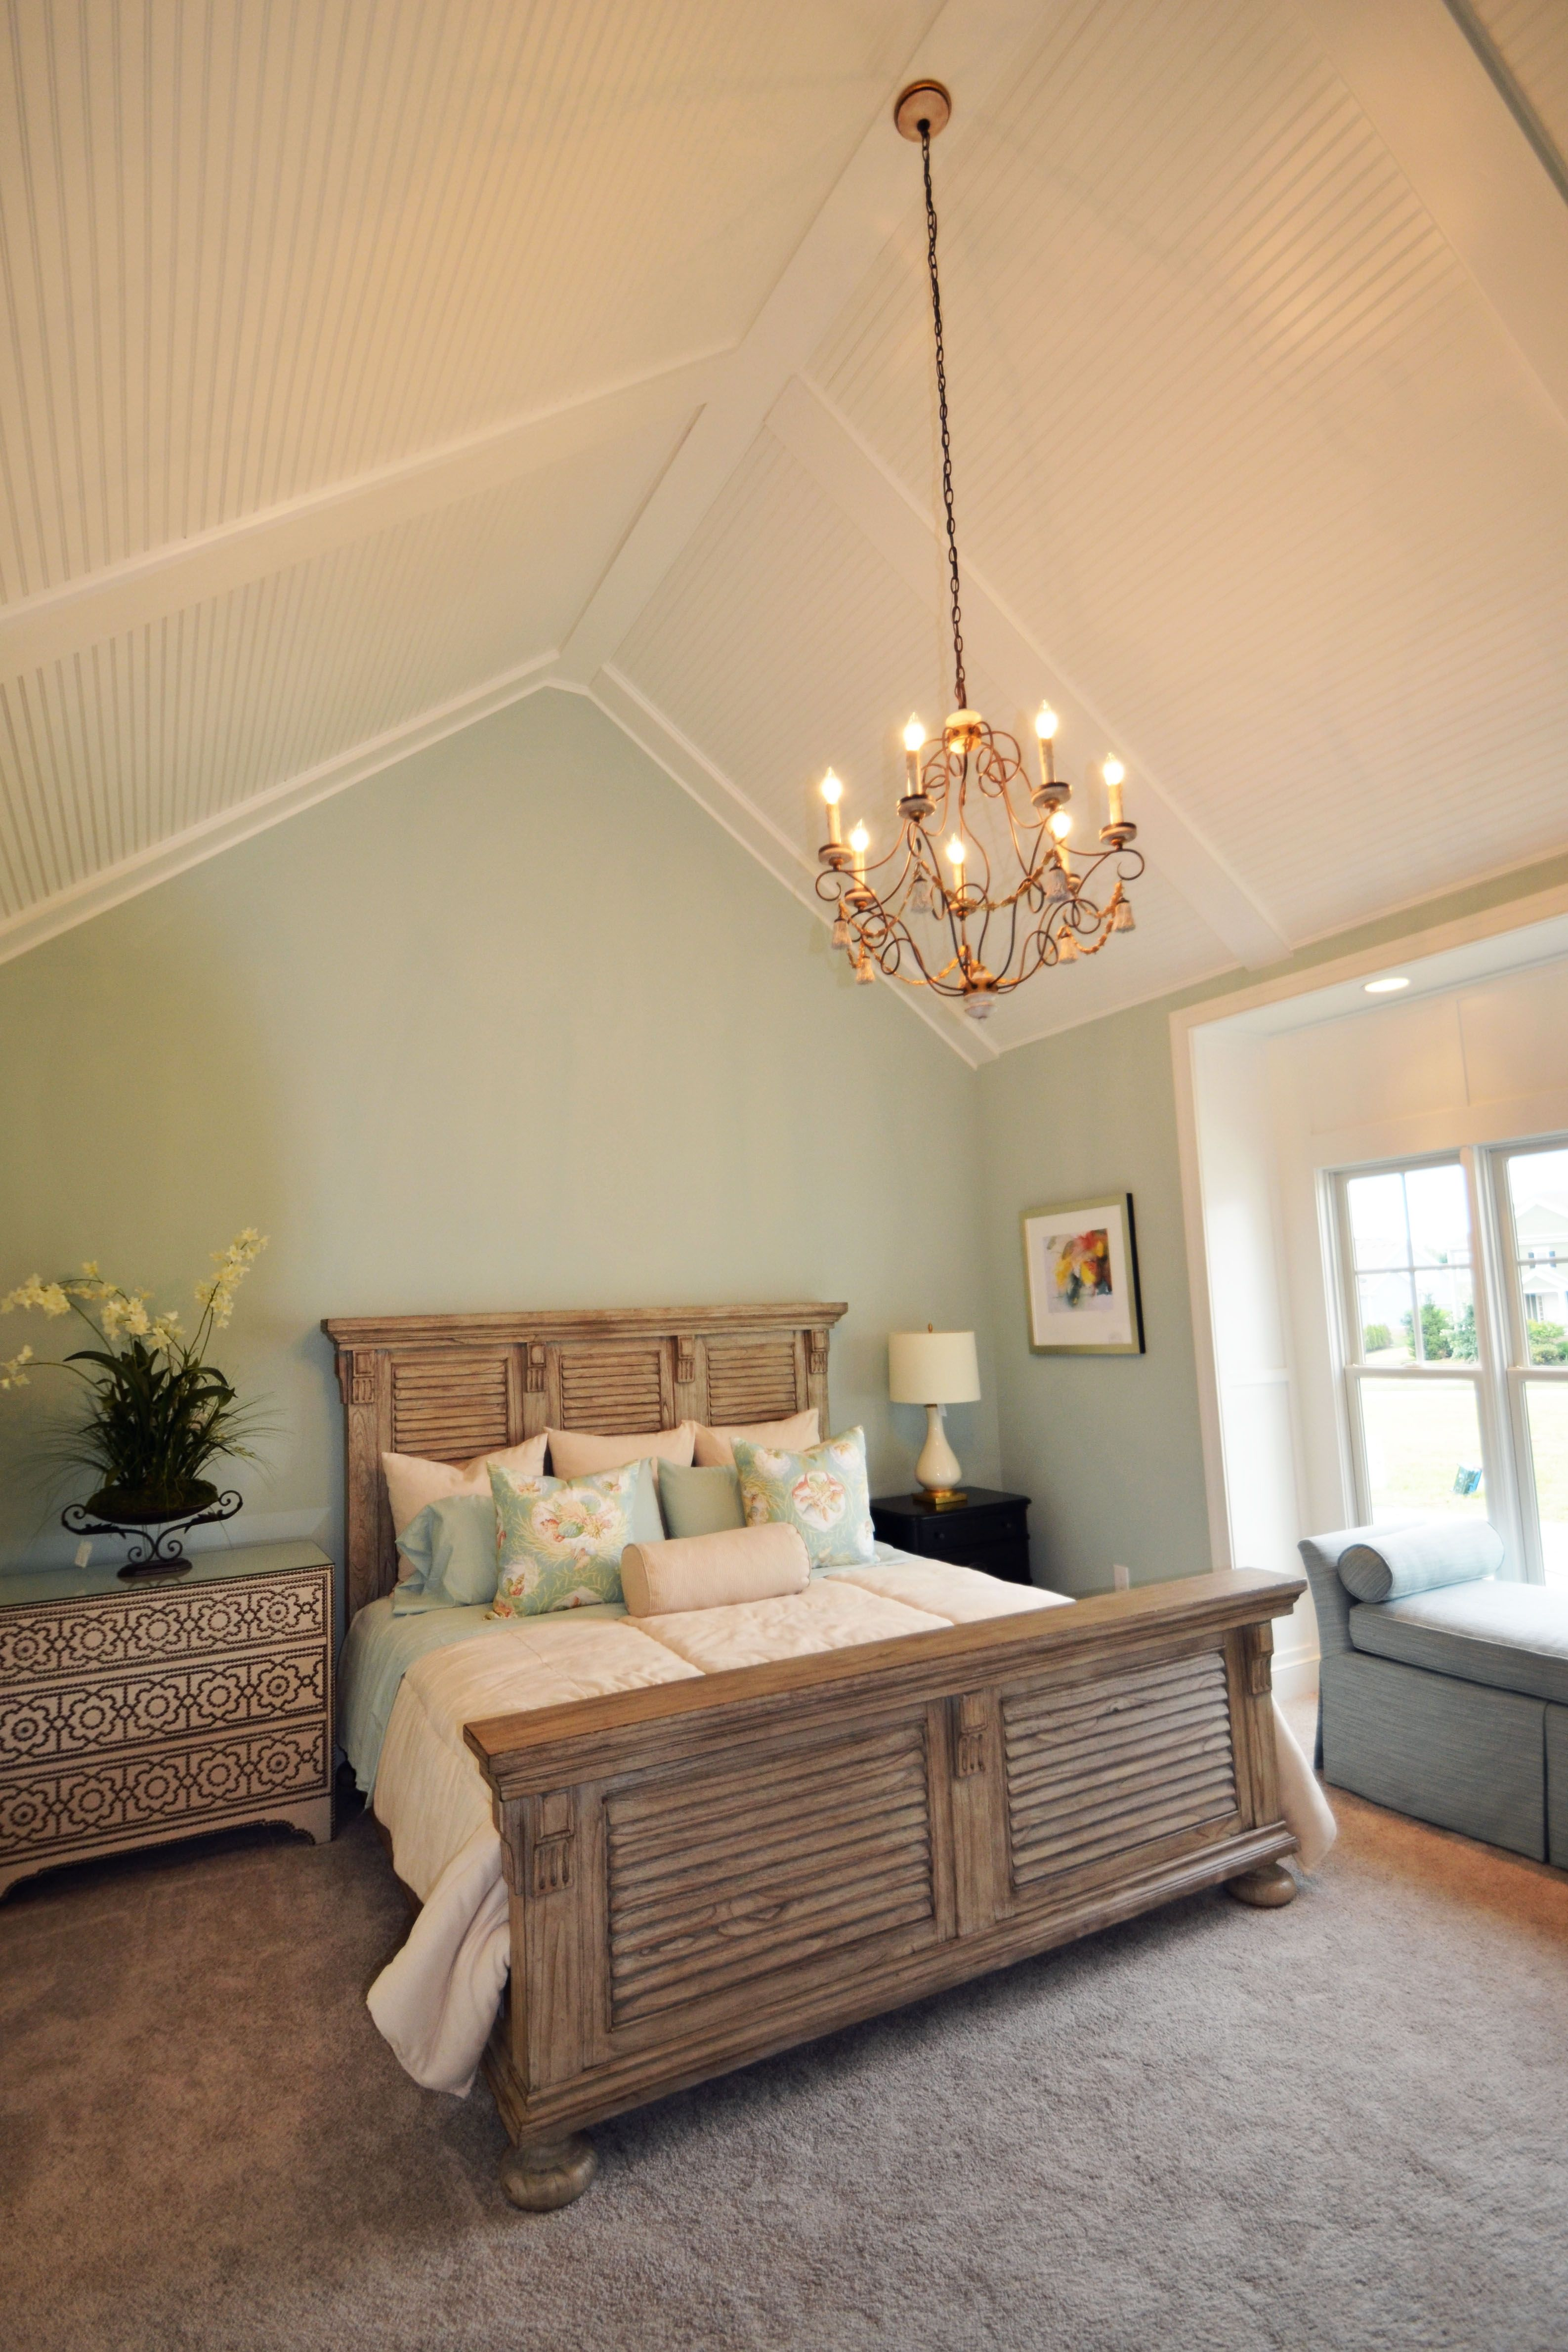 Bedroom Lighting Ideas Vaulted Ceiling Master Bedroom Lighting